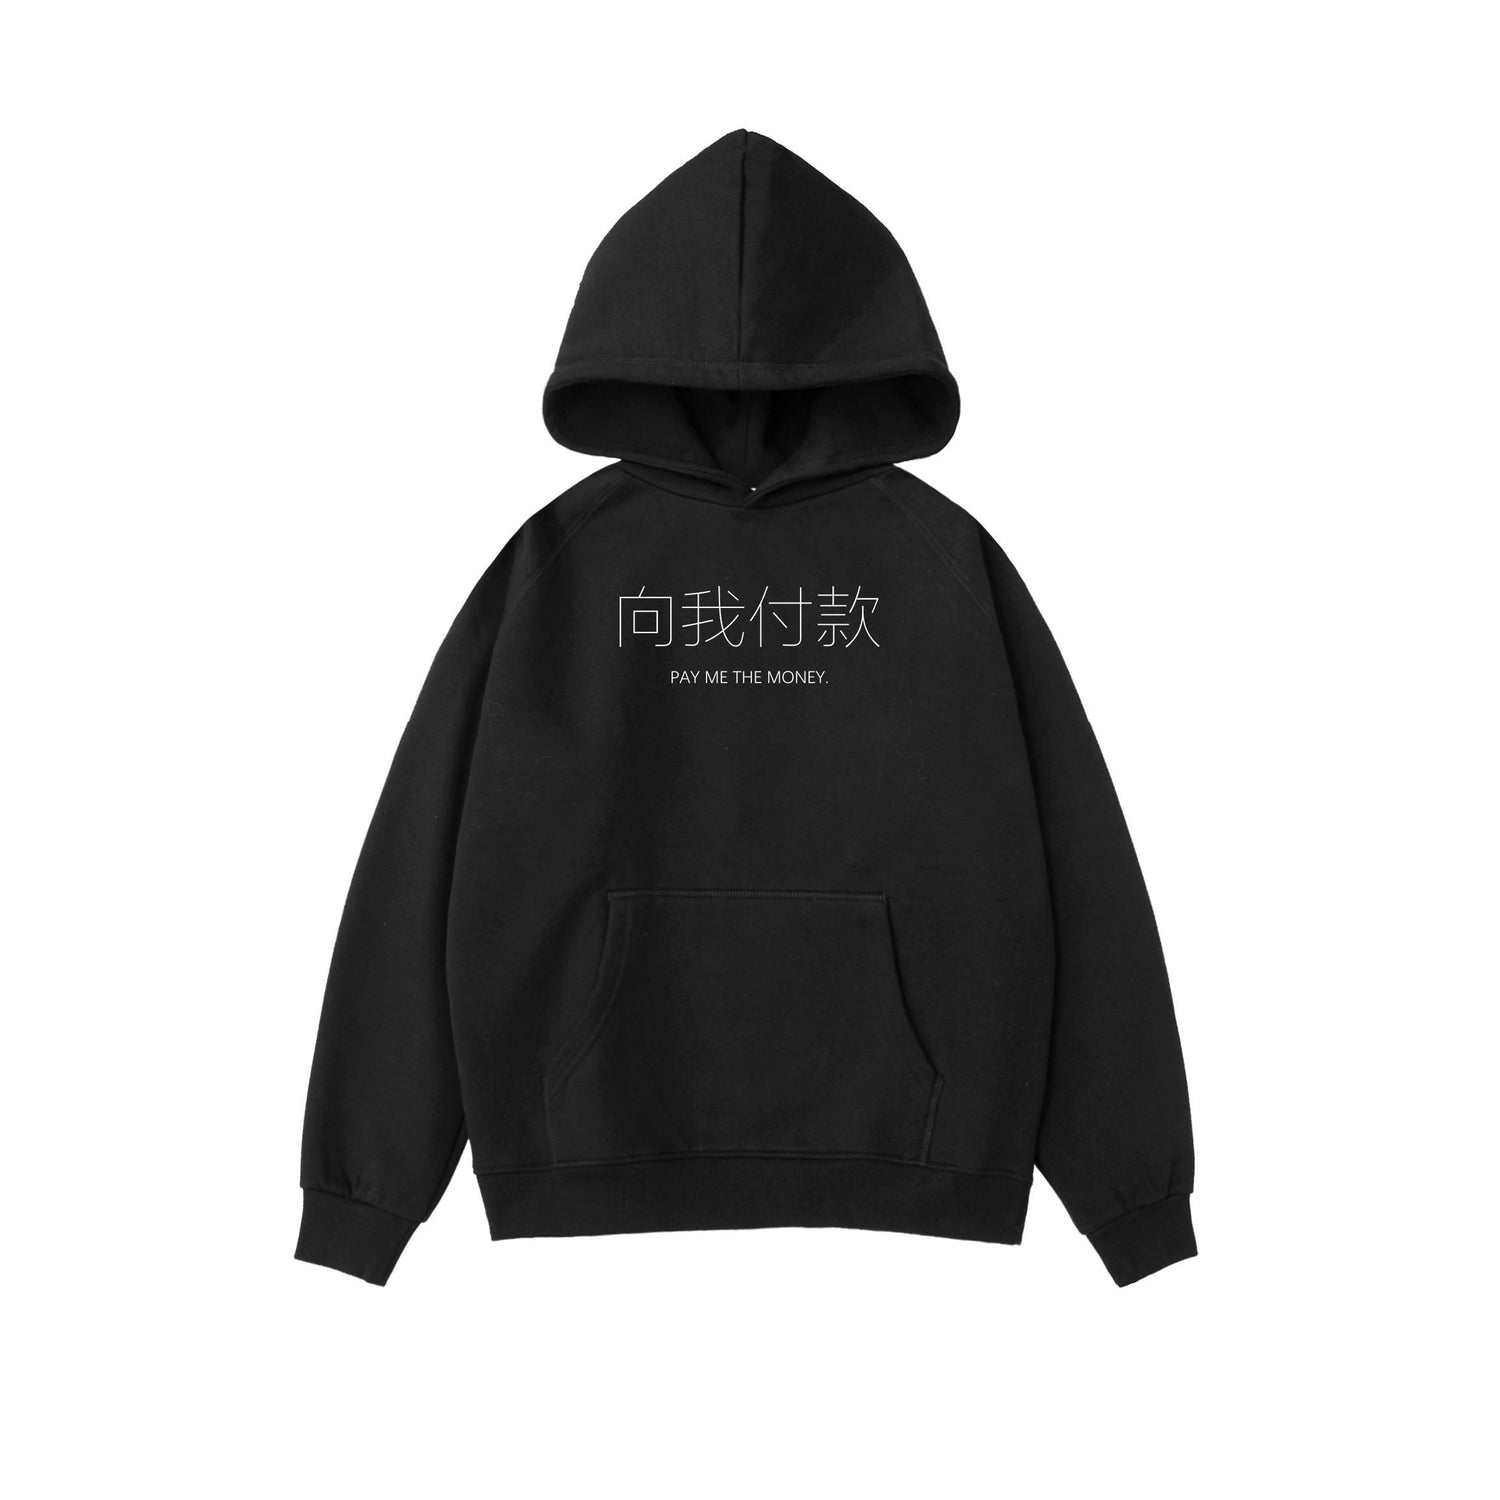 PROD Bldg Hoodie XS / Black Pay Me the Money